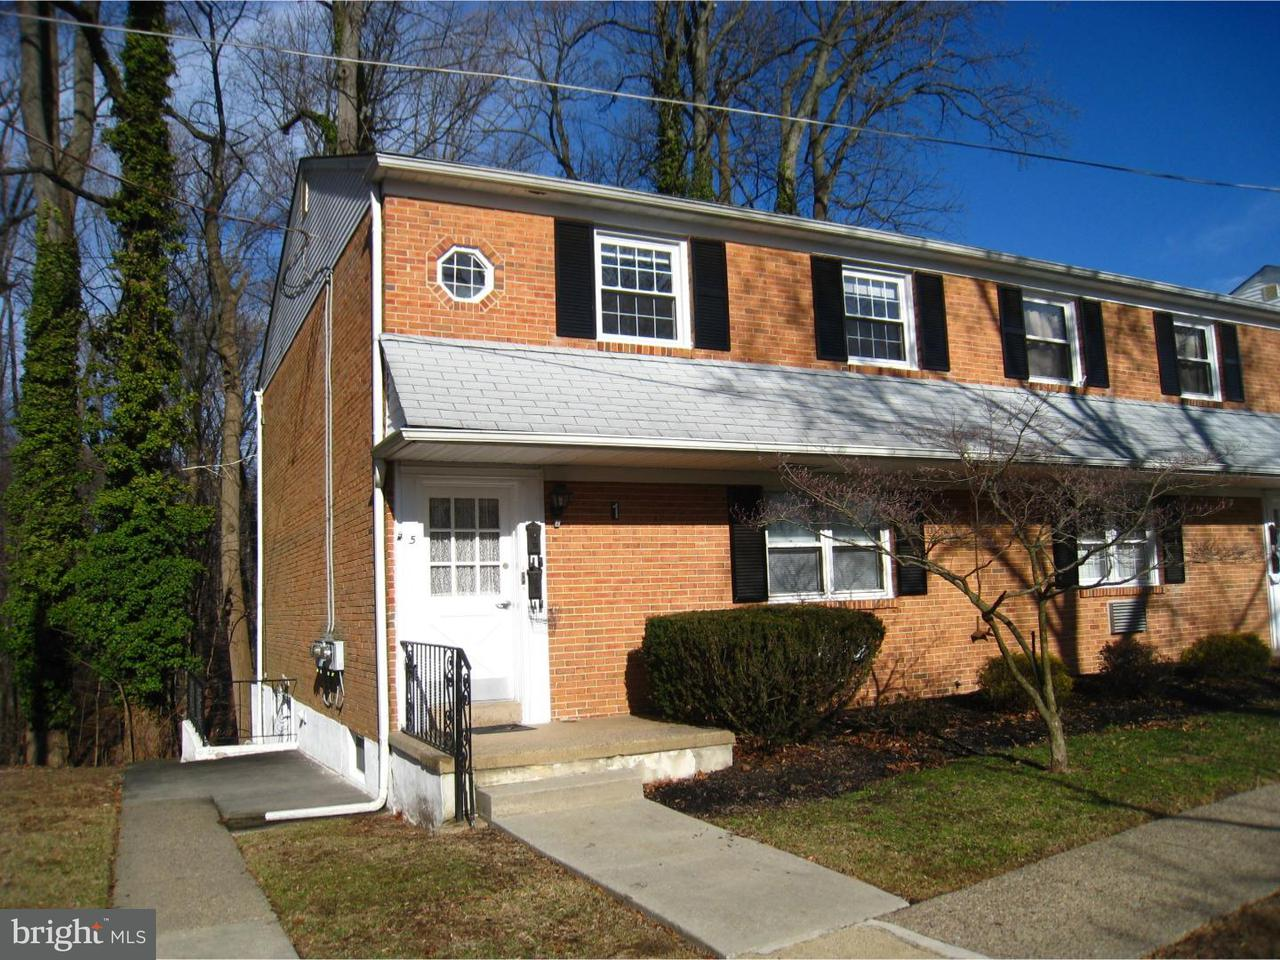 Single Family Home for Rent at 5C BEVERLY Lane Stratford, New Jersey 08084 United States